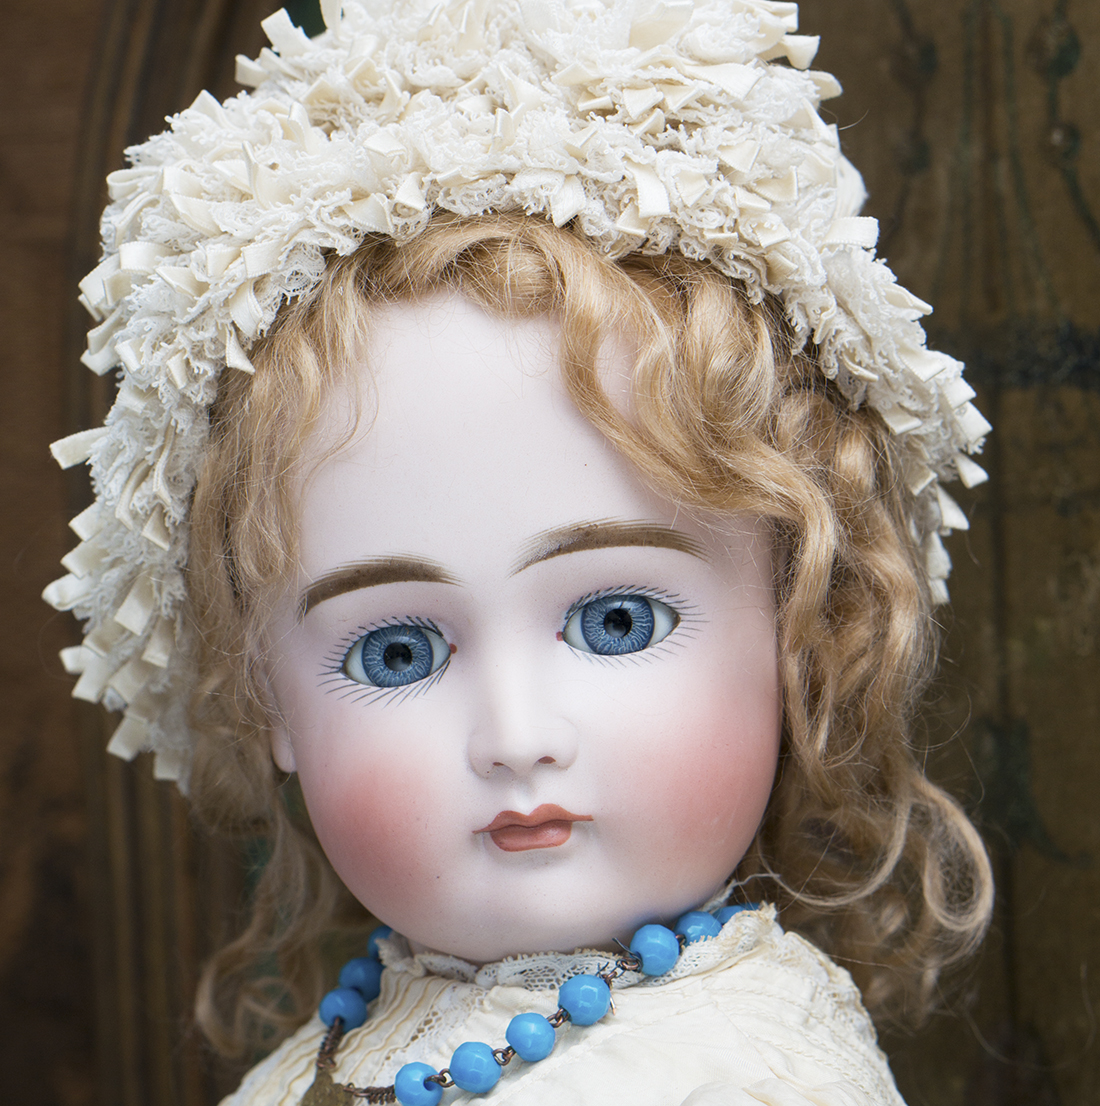 Doll by Kestner